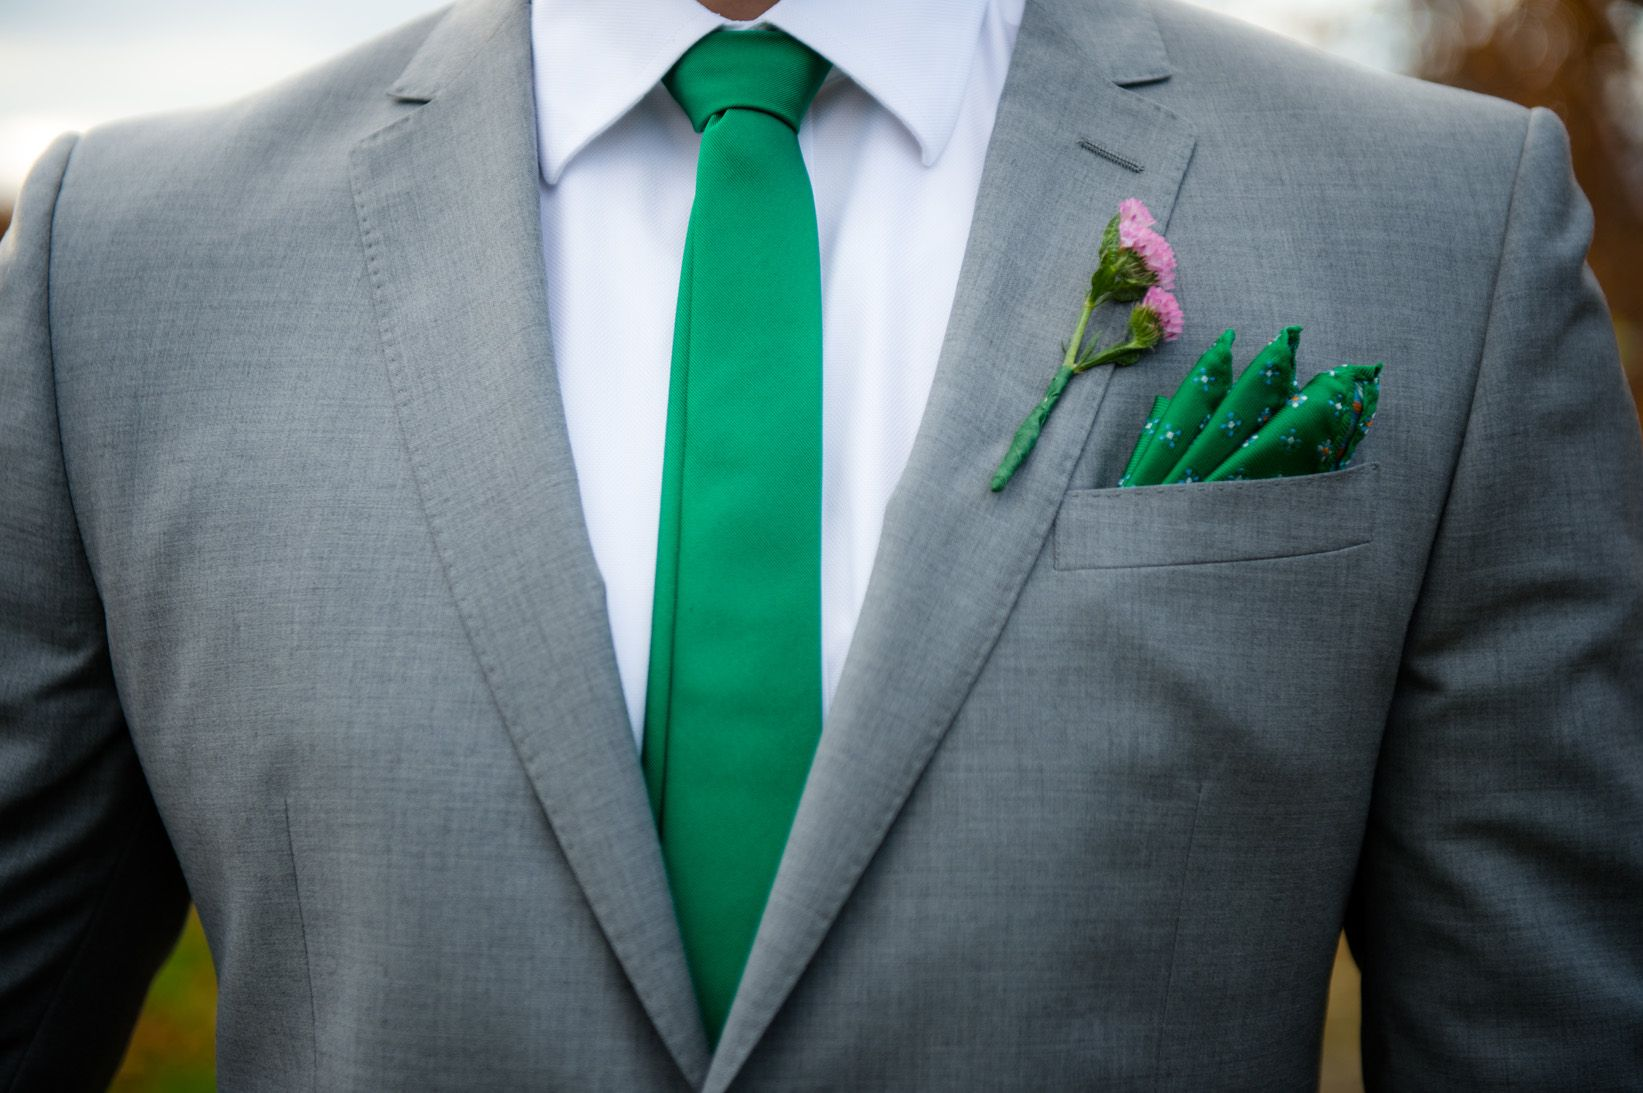 Gray Suit with Green Tie and Pocket Square | December | Pinterest ...